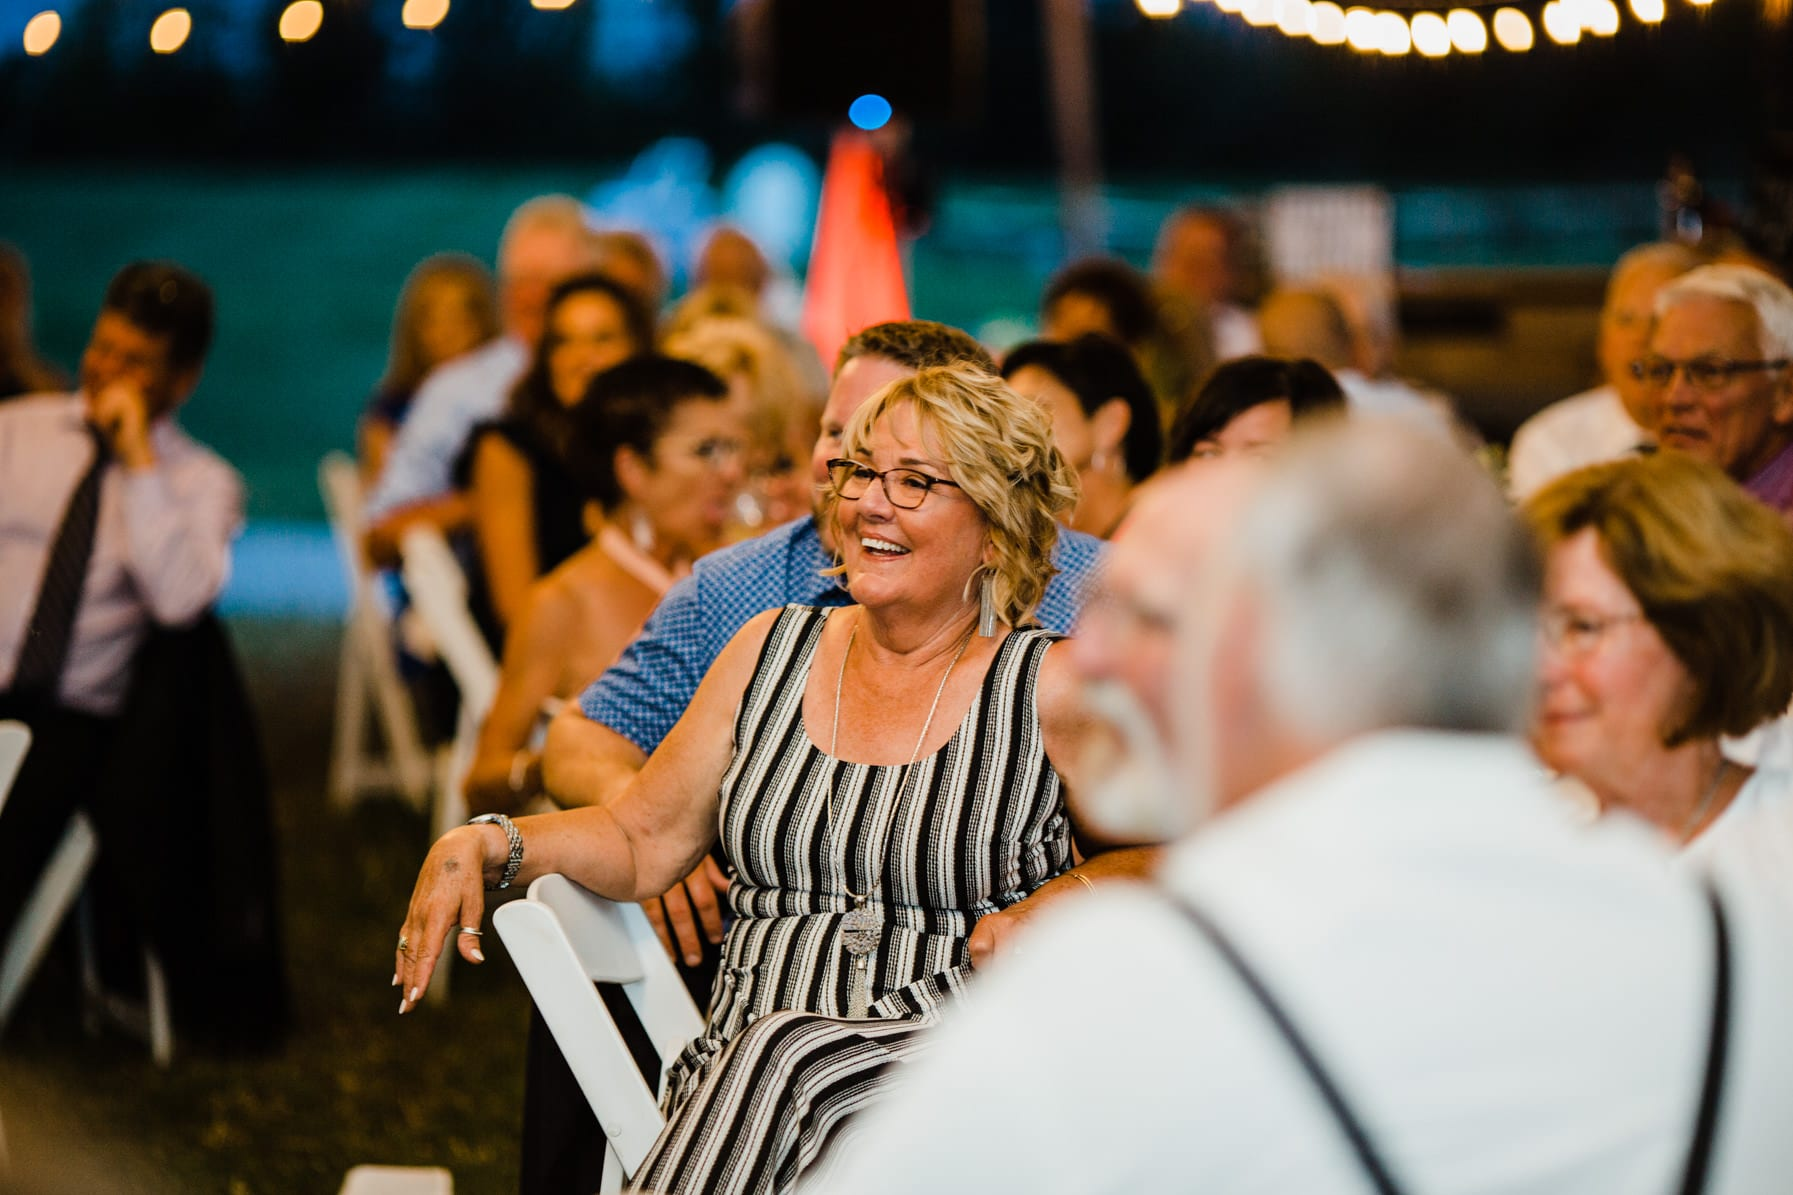 guests react to speeches - summer farm wedding